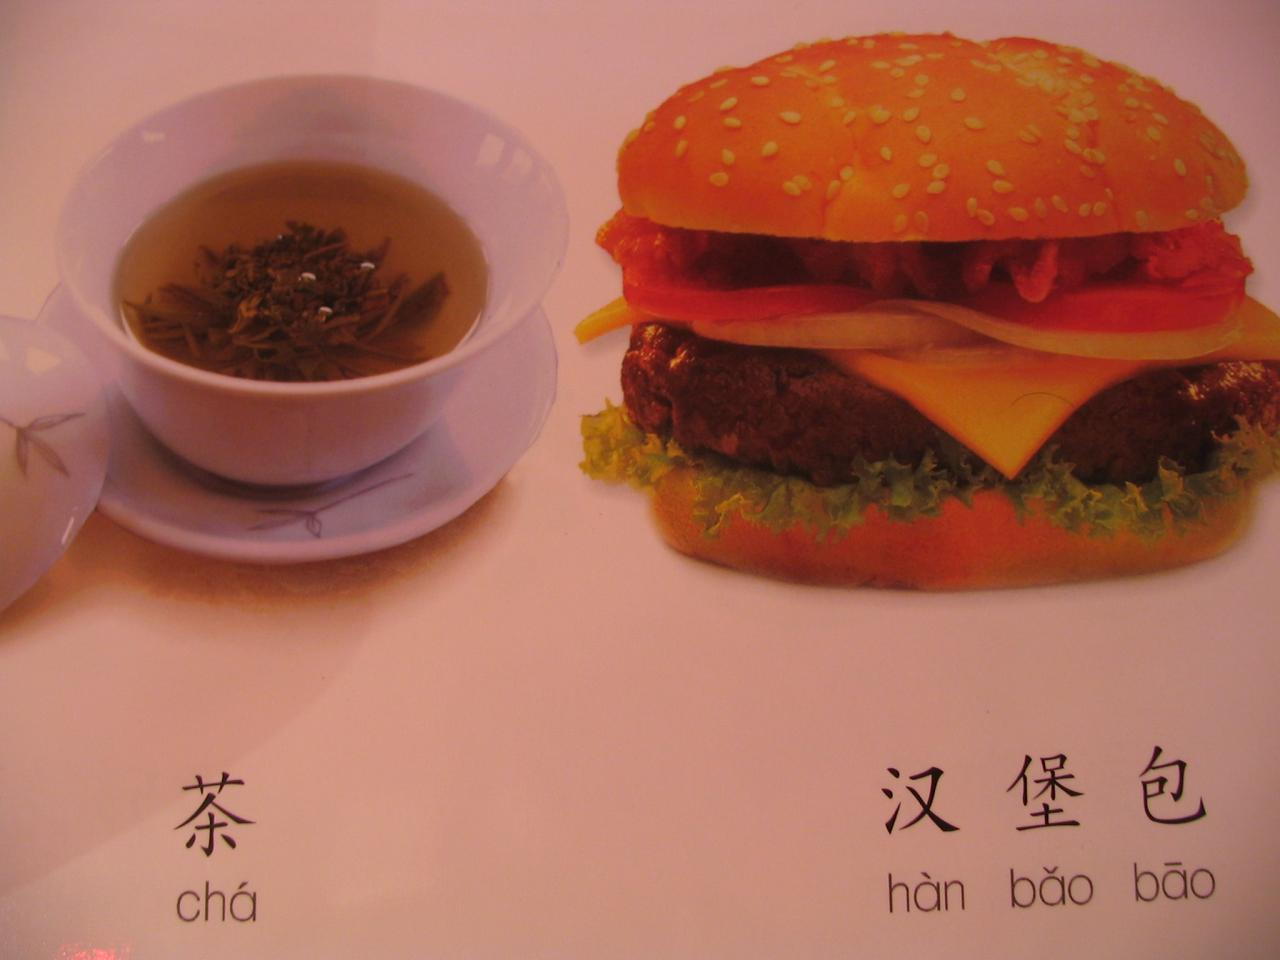 thé/hamburger